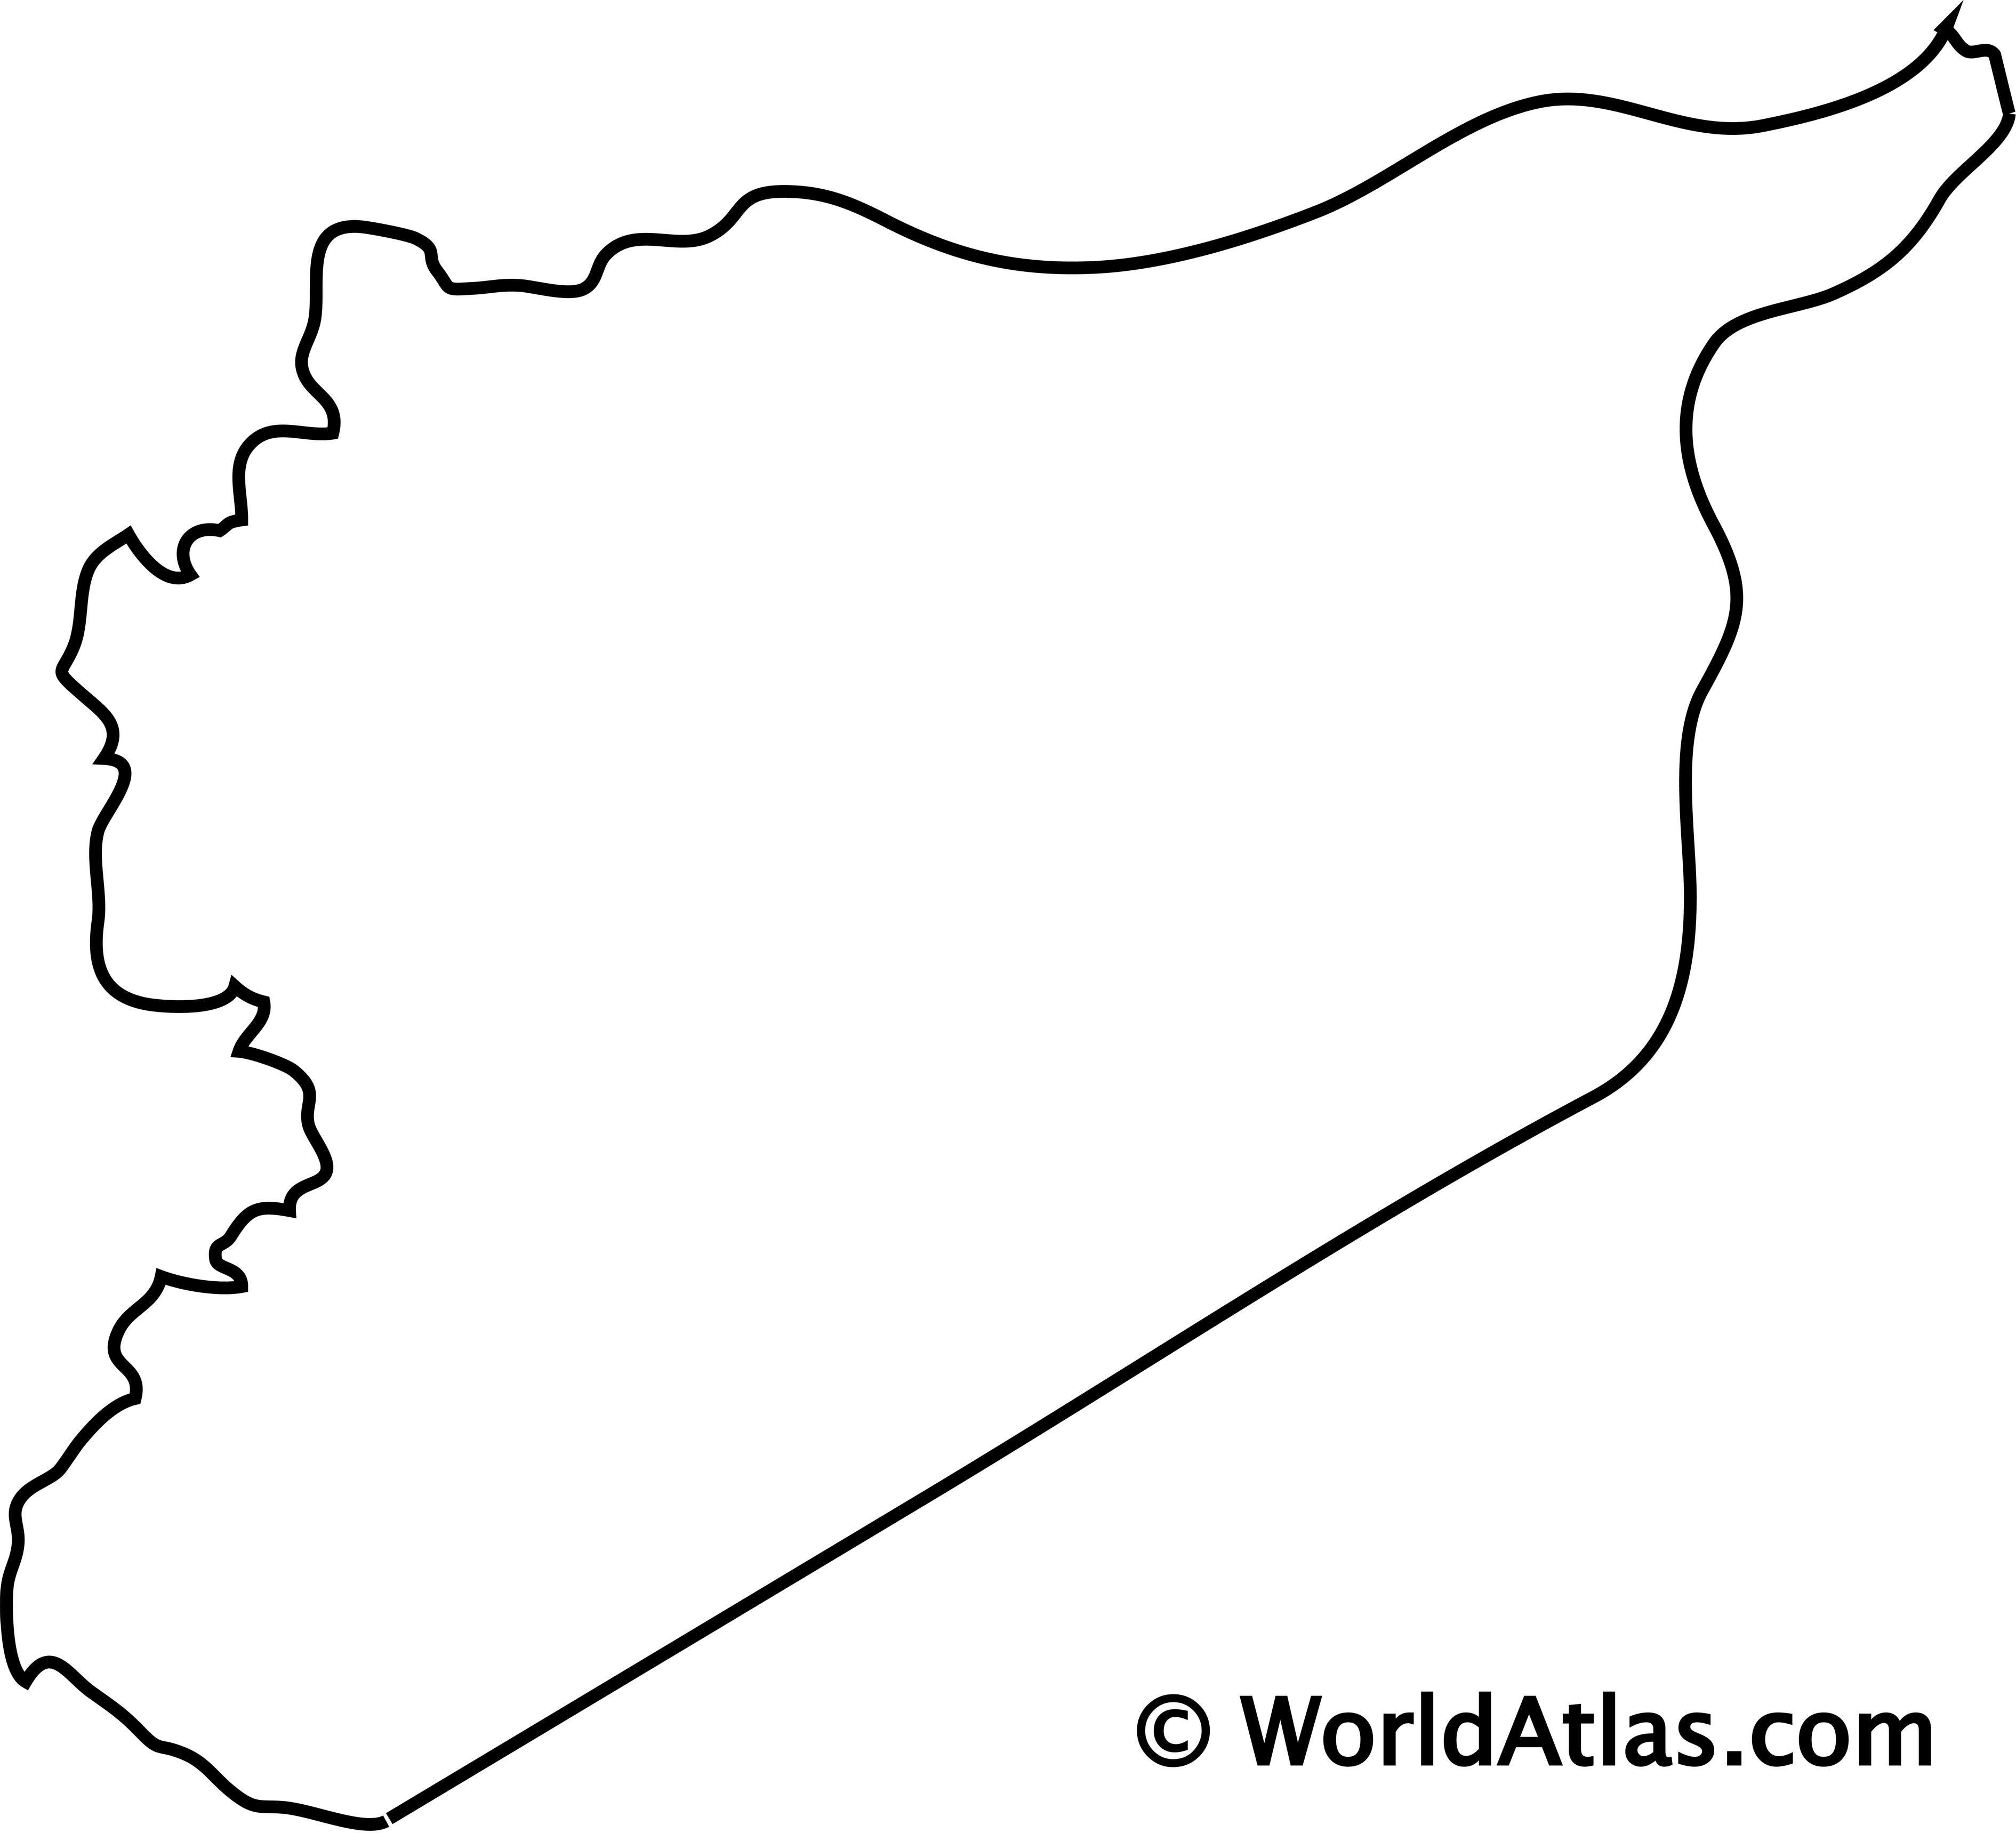 Blank Outline Map of Syria